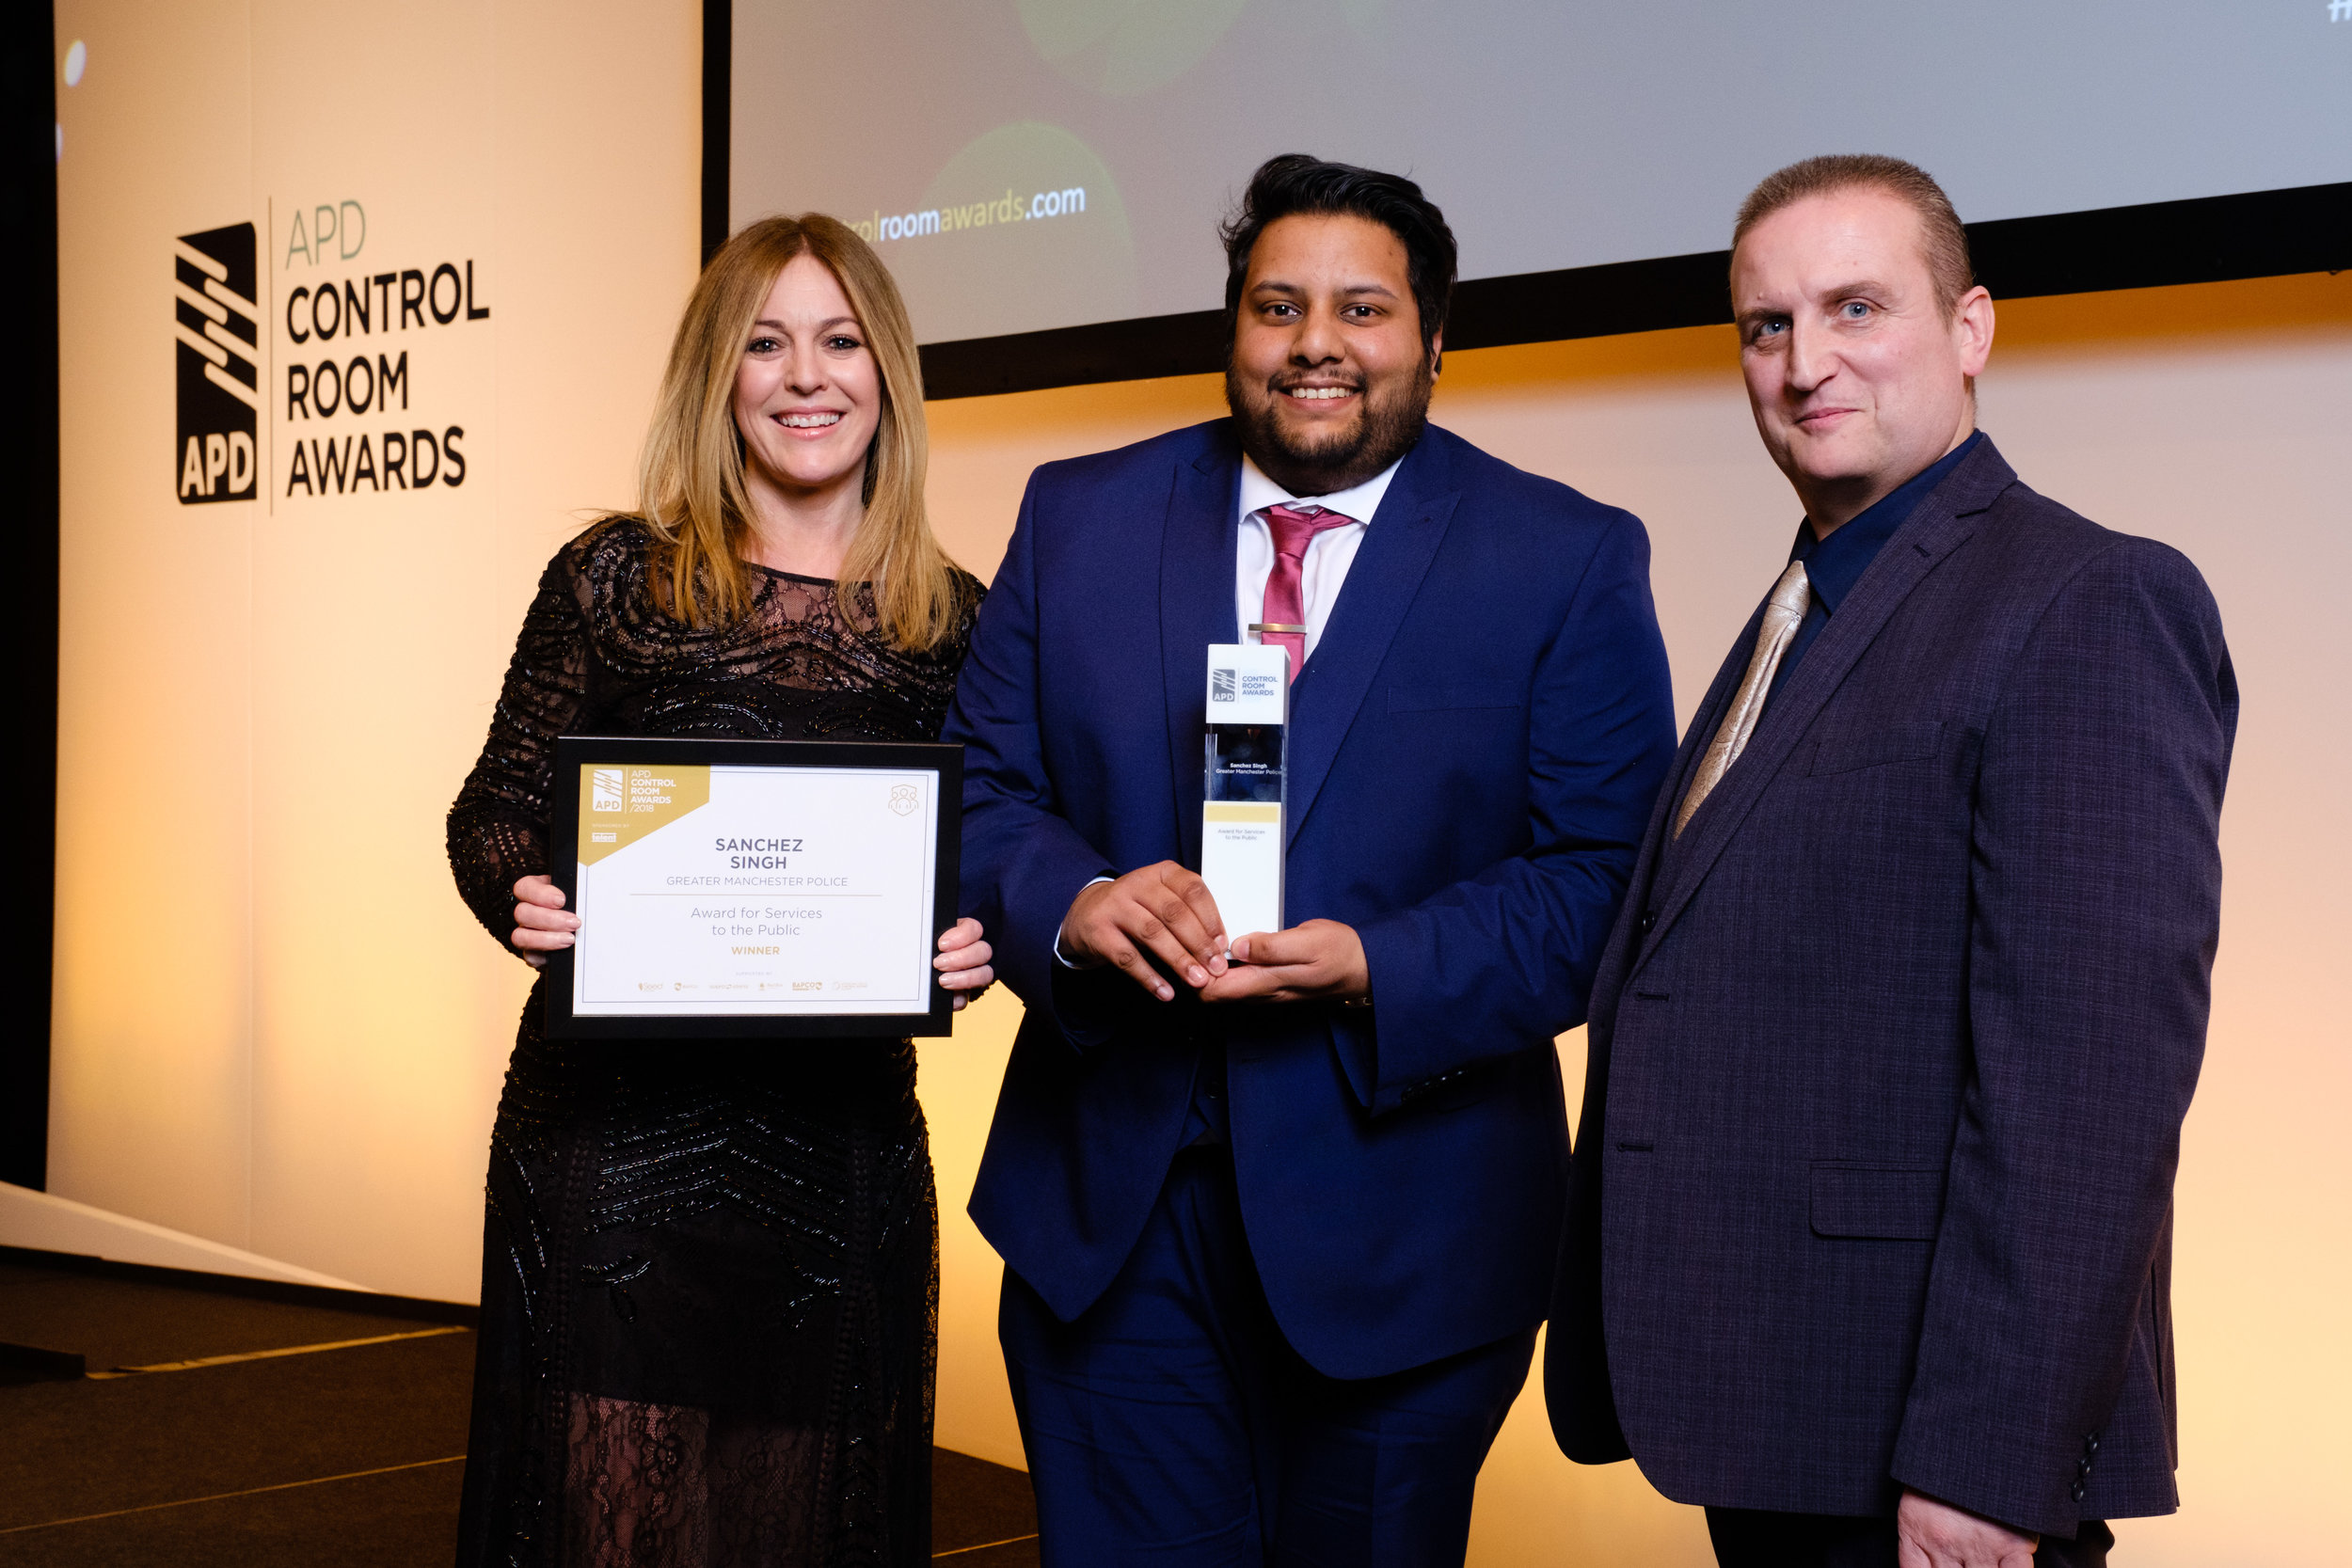 Sanchez Singh, winner of the Award for Services to the Public